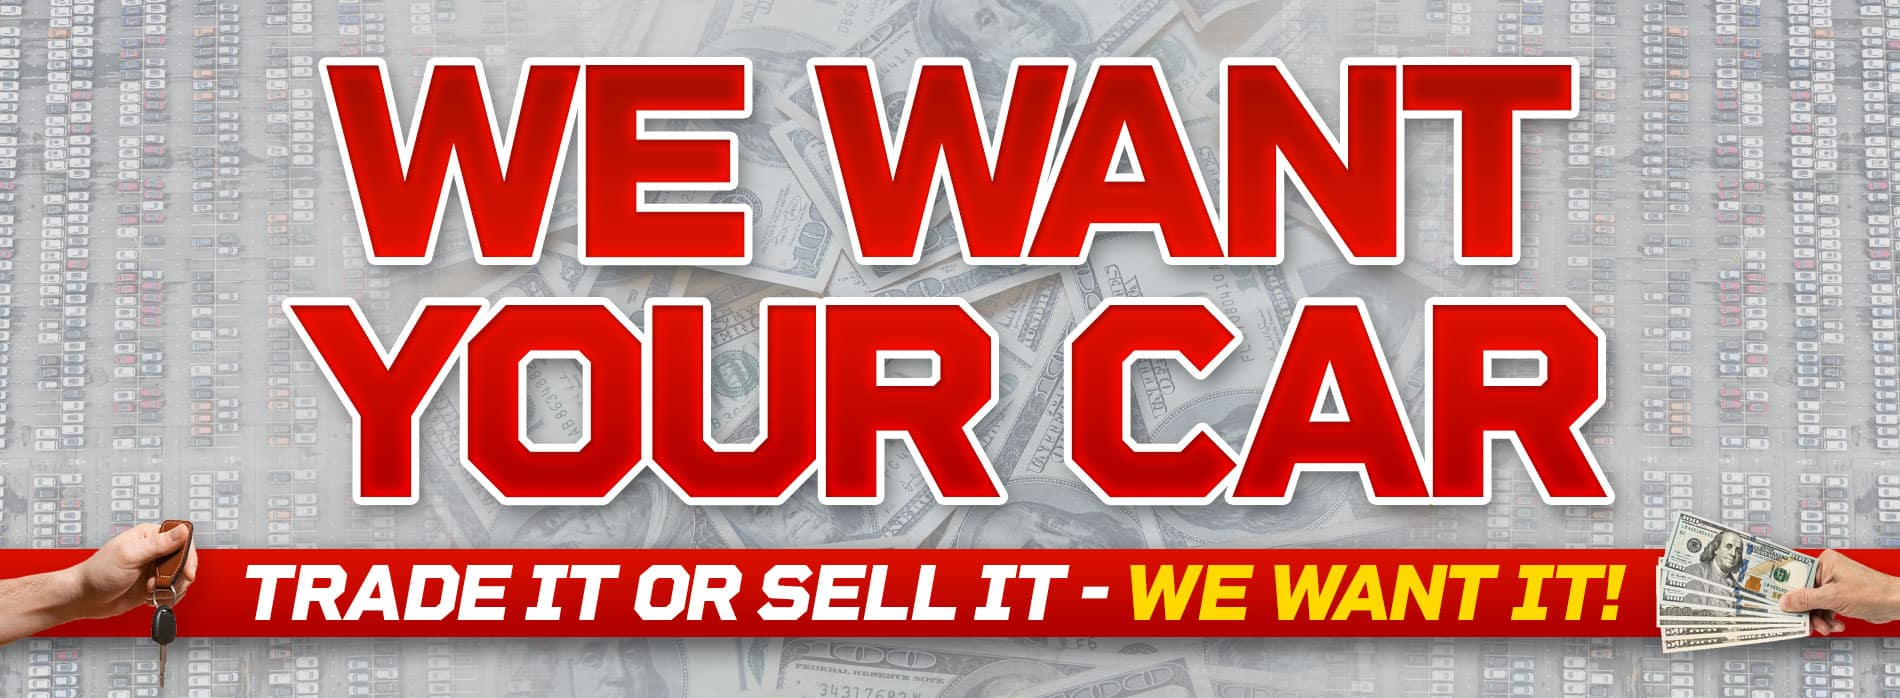 We want your car at Courtesy Jeep